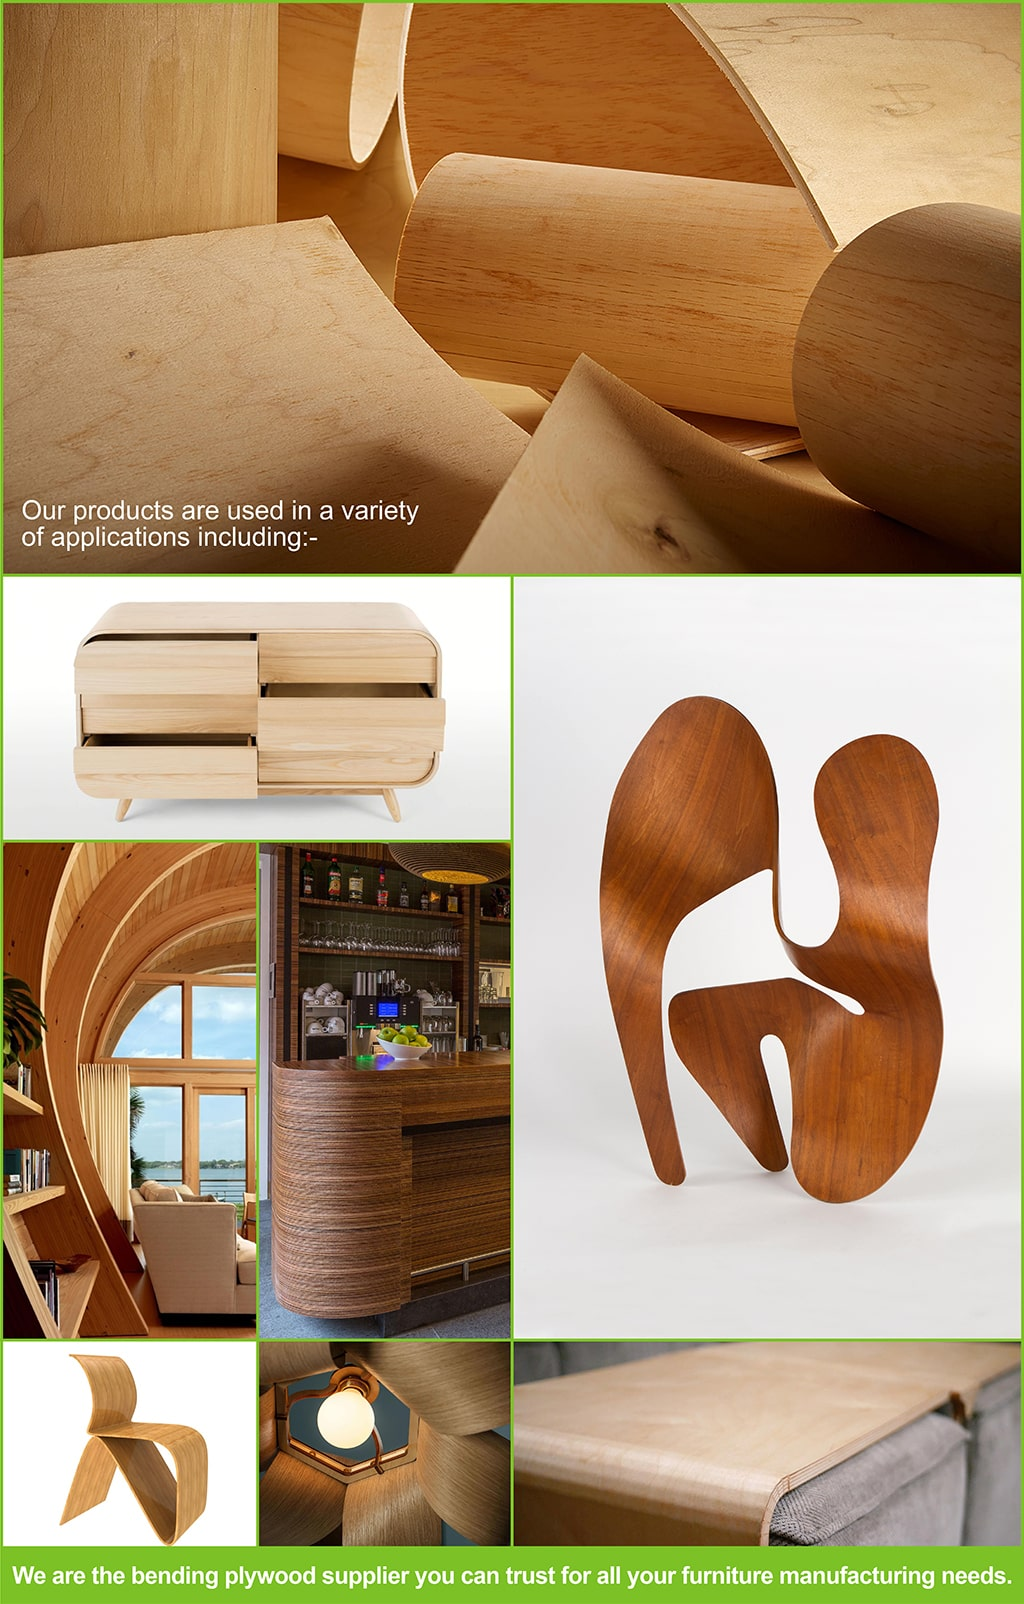 bending plywood products